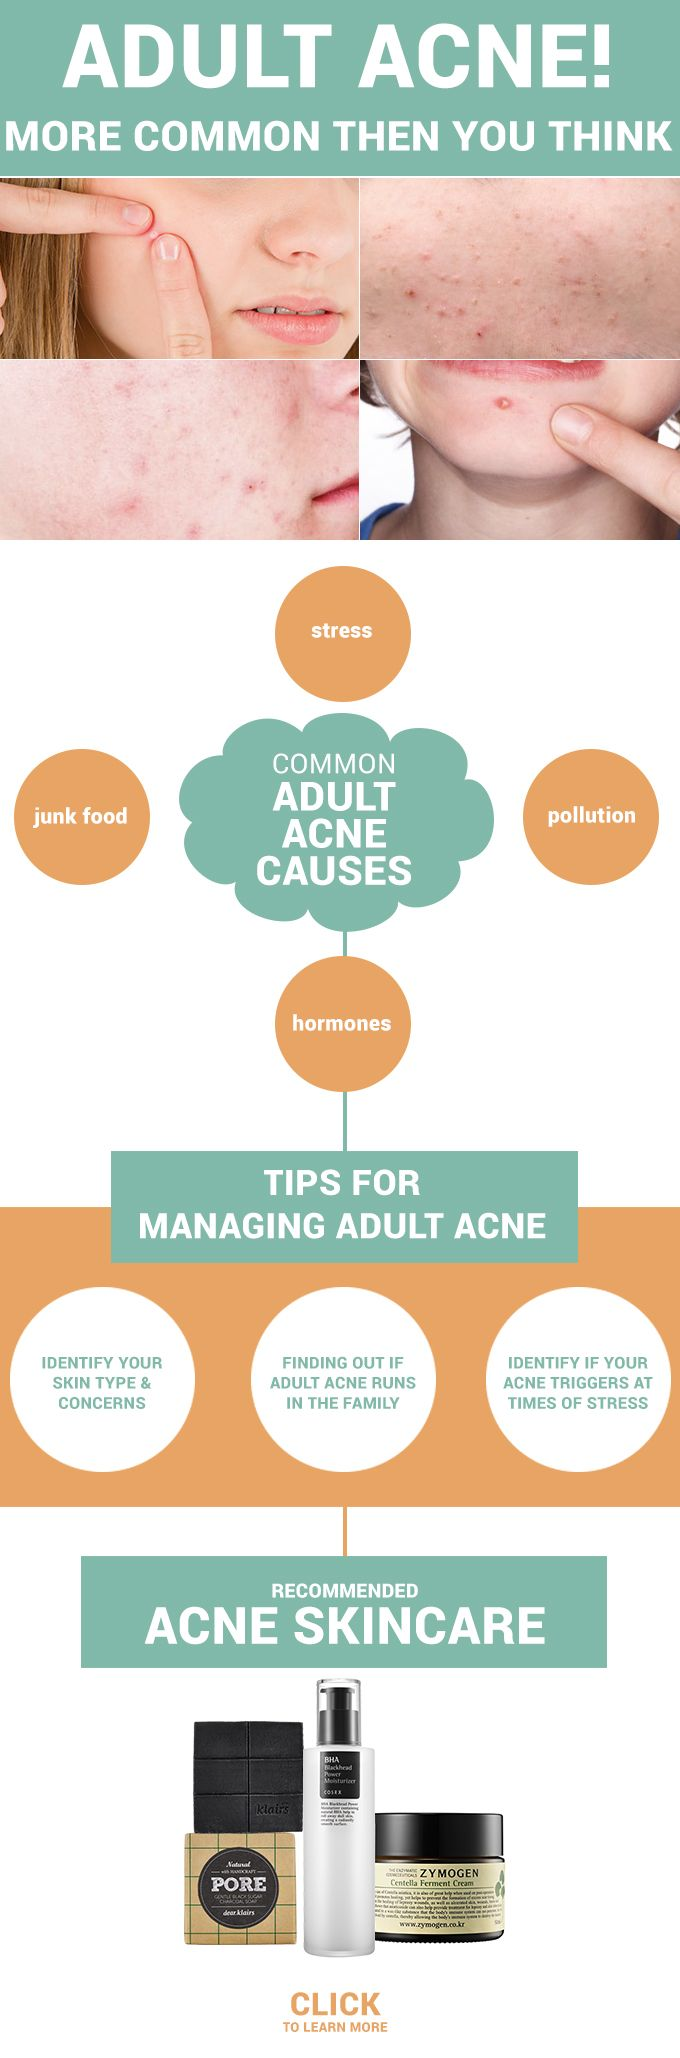 Are you 20+ and still suffering from acne? Well believe it or not, adult acne is affecting most of us, lets dissect the top adult acne causes and solve it! - http://www.wishtrendglam.com/adult-acne-causes/ #acne #adult #adultacne #pimples #skin #skincare #trouble #tips #help #advice